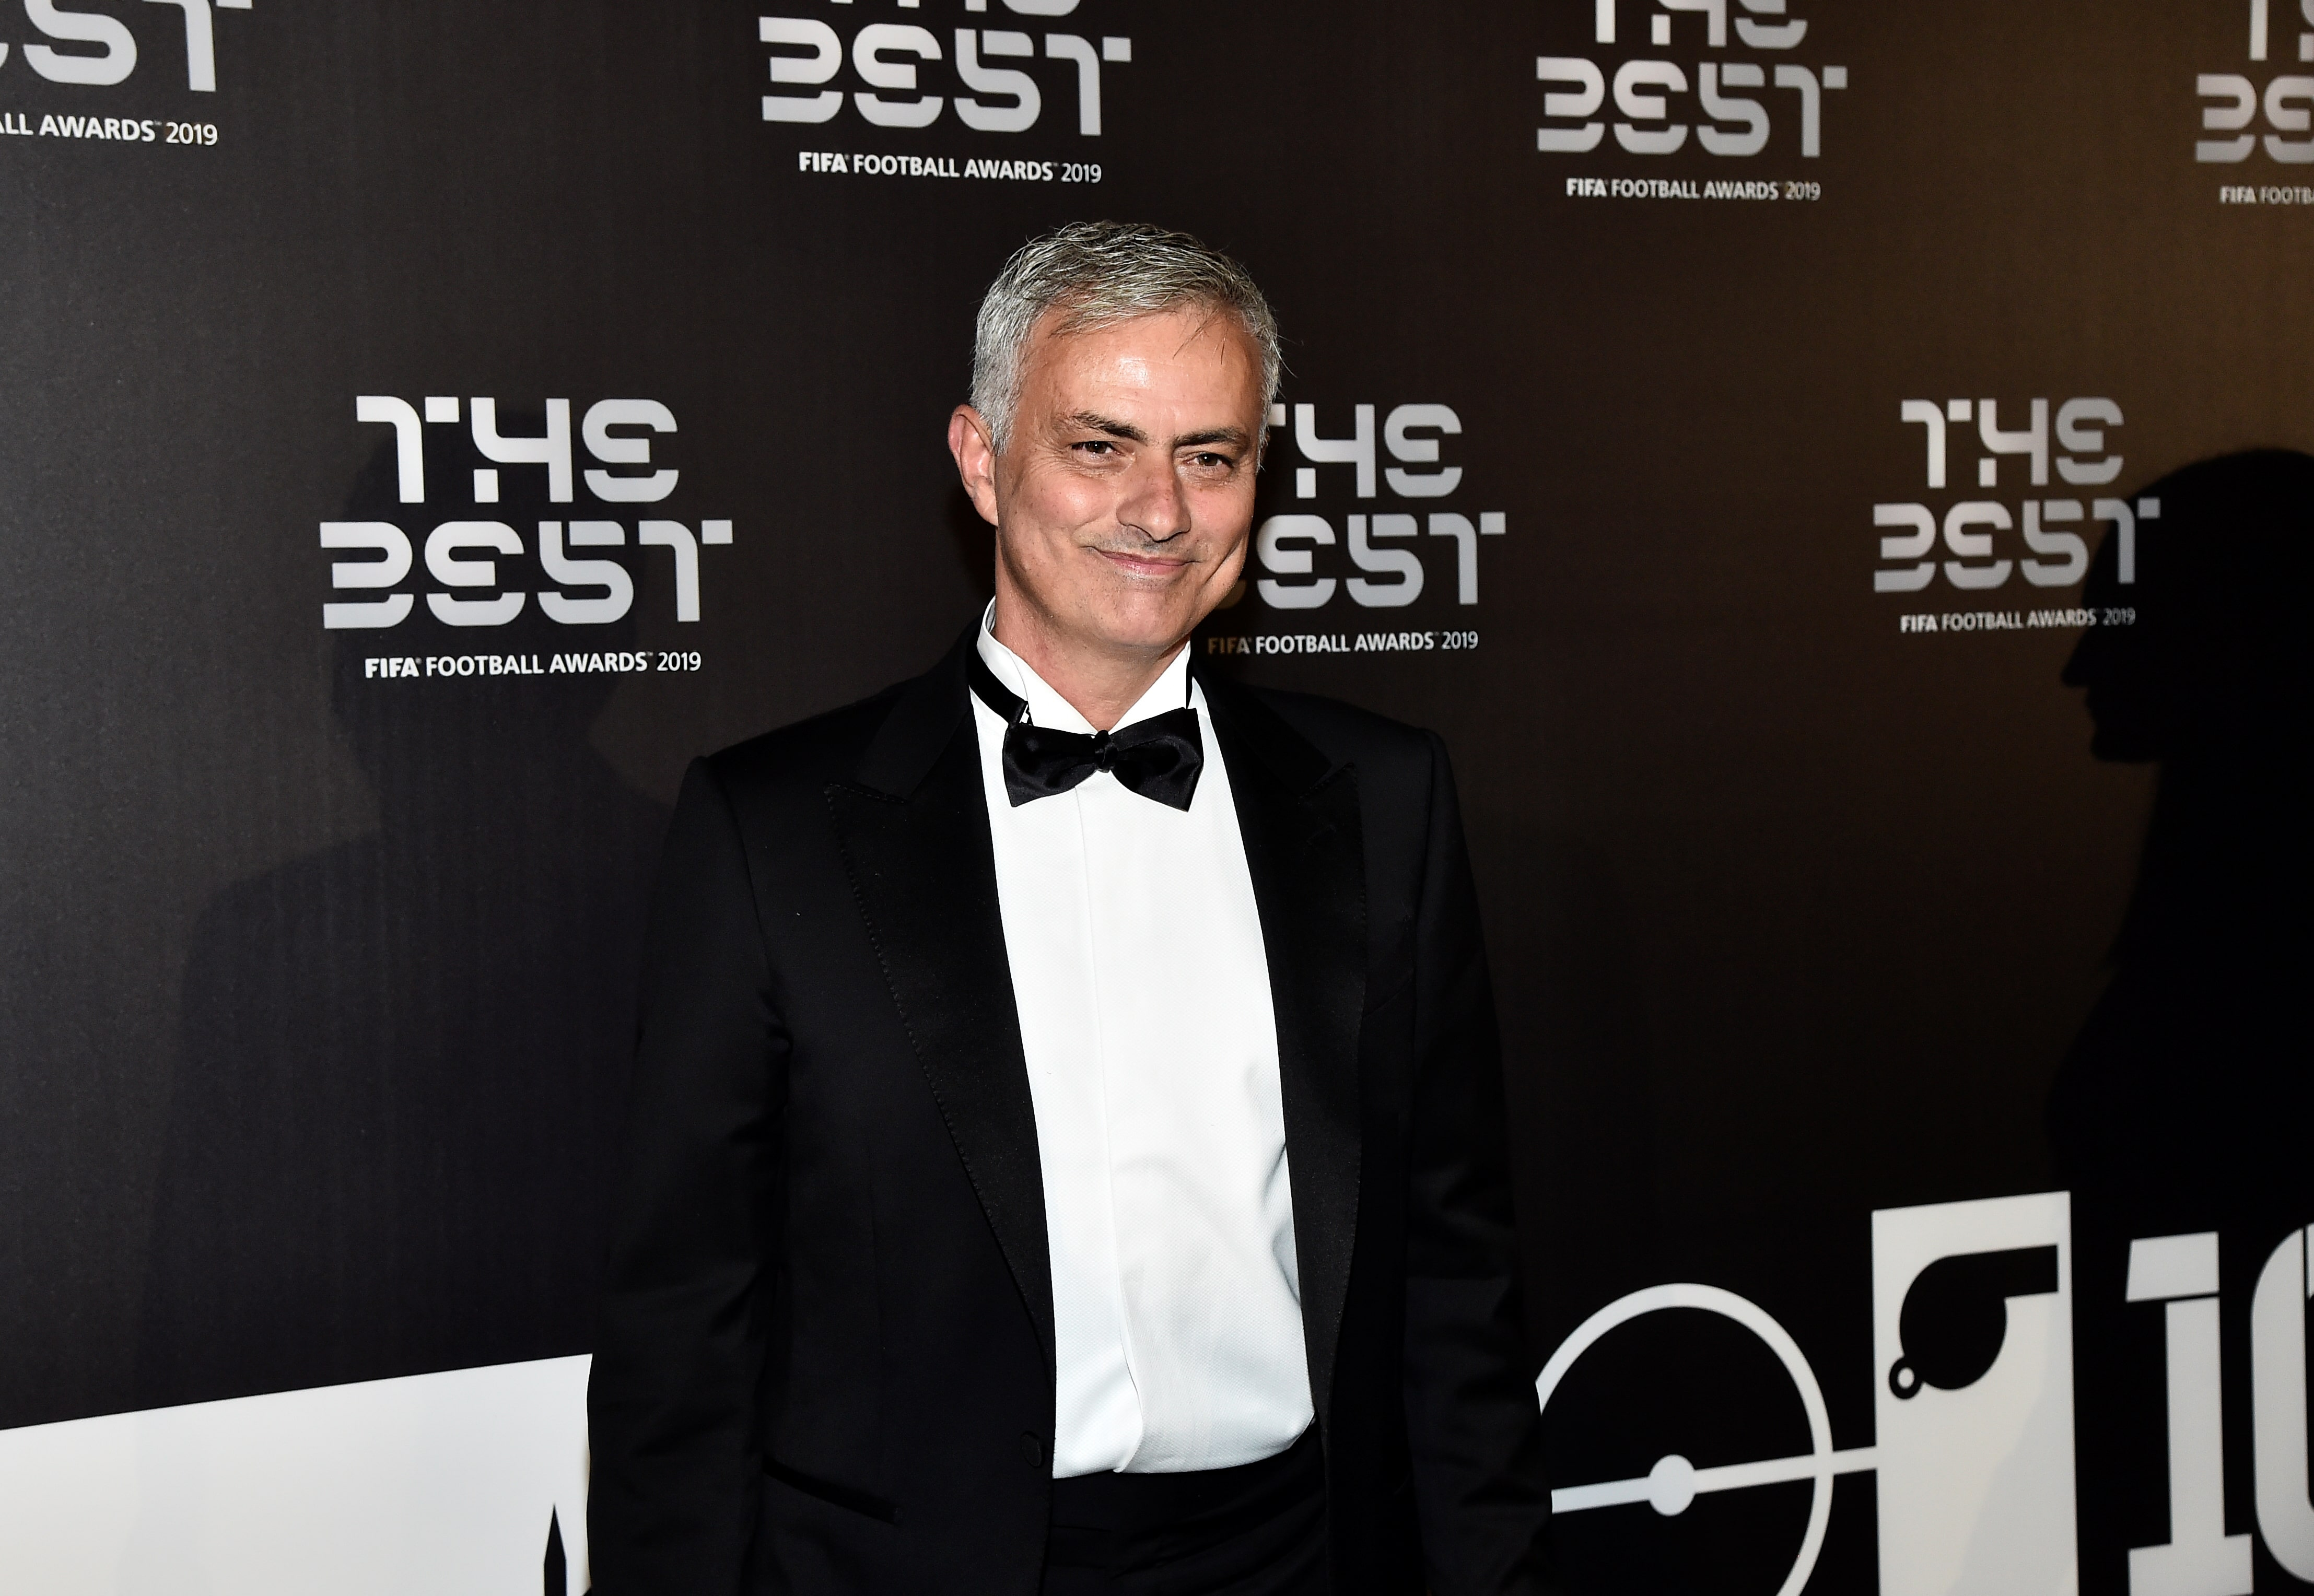 10 Most Successful Managers in Champions League History